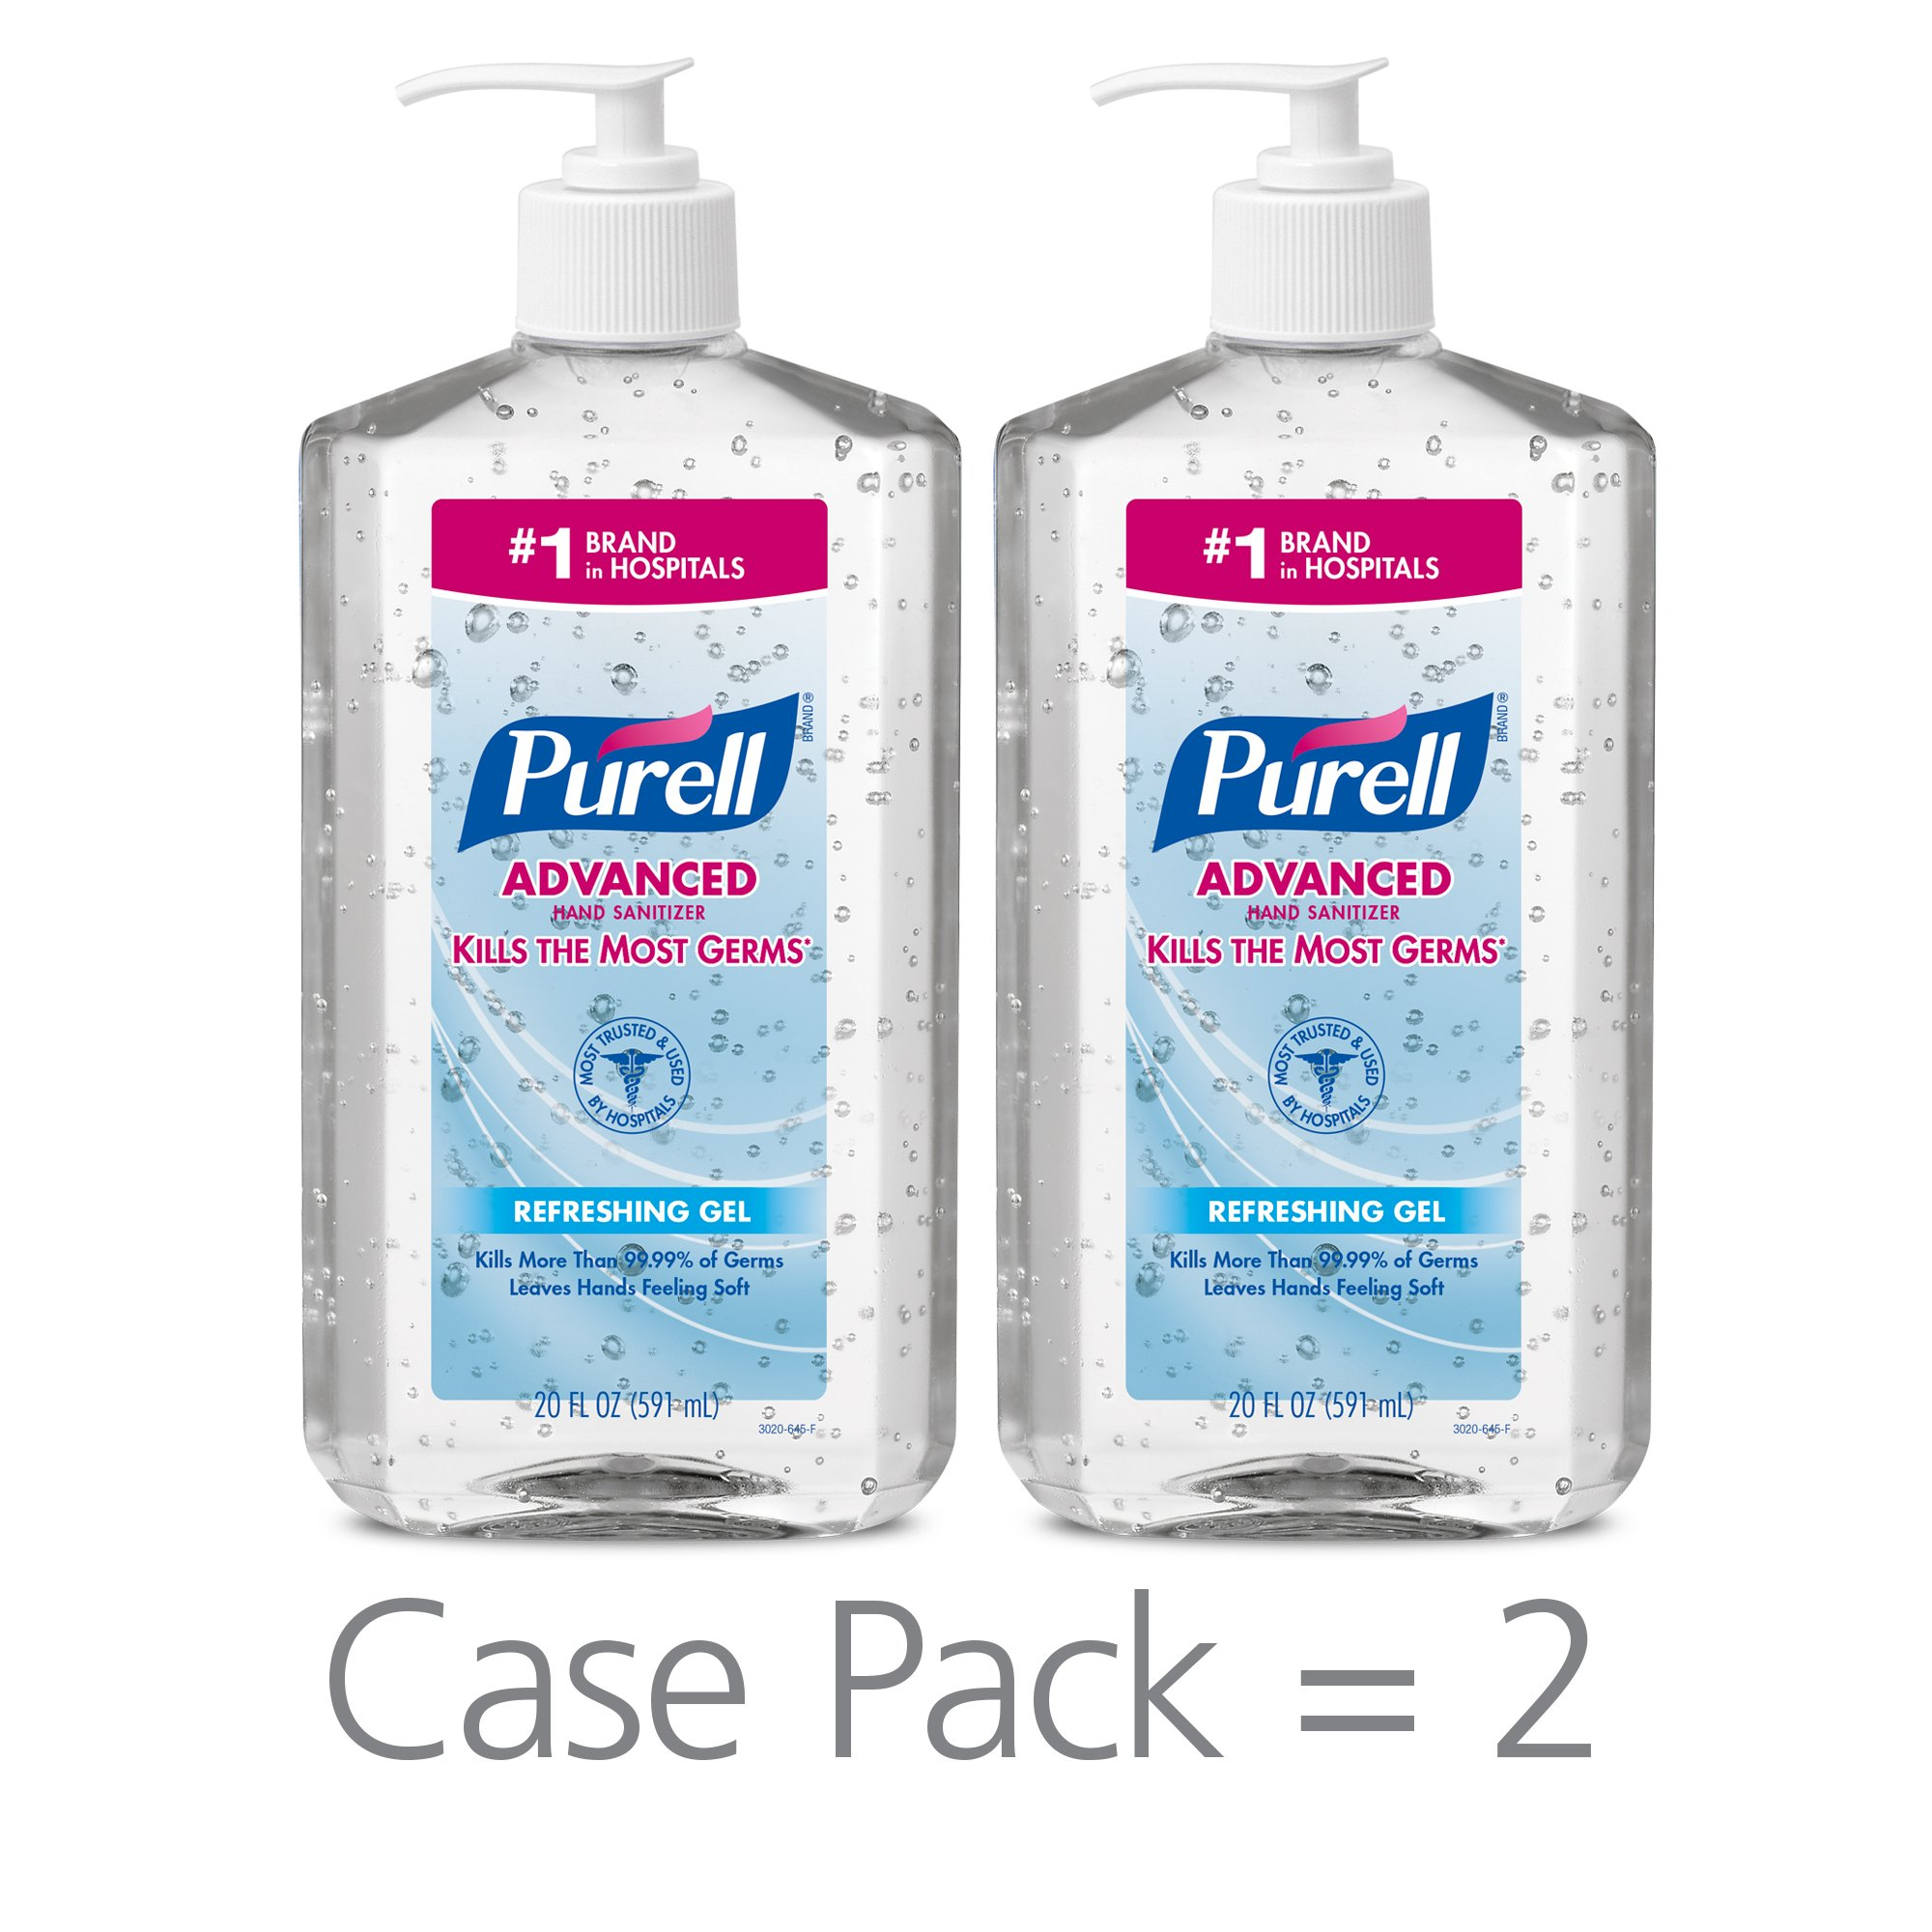 PURELL Advanced Hand Sanitizer, Refreshing Gel, 20 fl oz Hand Sanitizer Table Top Pump Bottles (Pack of 2) - 3023-12-EC by Purell